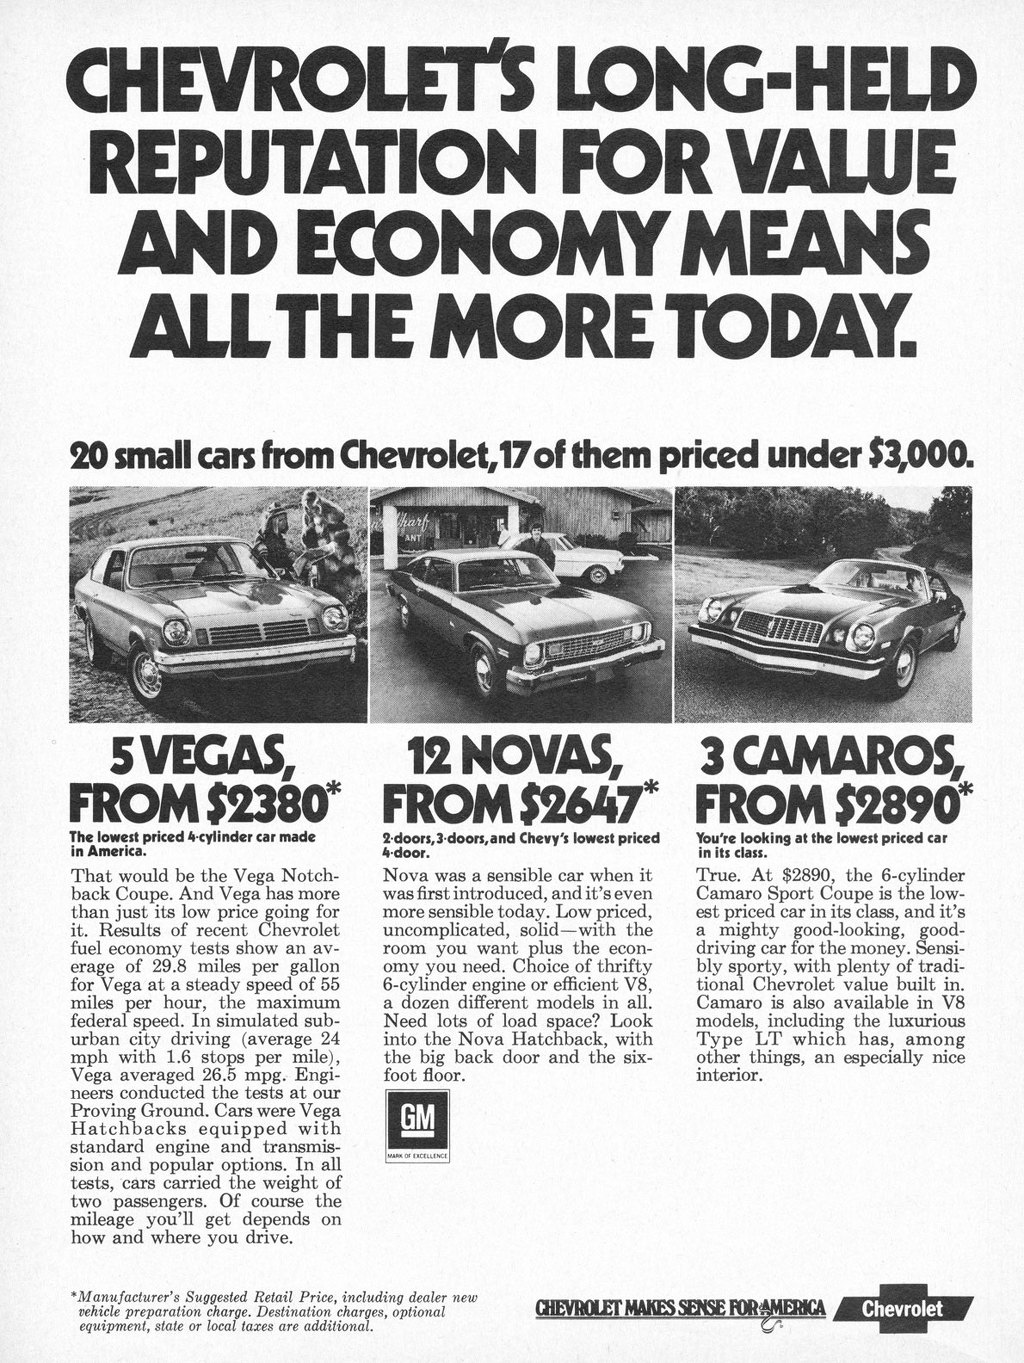 Chevrolet's long-held reputation for value and economy means all the more today. 20 small cars from Chevrolet, 17 of them priced under $3,000.  5 VEGAS, FROM 52380*  The lowest priced 4•cylinder car made in America. That would be the Vega Notch-back Coupe. And Vega has more than just its low price going for it. Results of recent Chevrolet fuel economy tests show an av-erage of 29.8 miles per gallon for Vega at a steady speed of 55 miles per hour, the maximum federal. speed. In simulated sub-urban city driving (average 24 mph with 1.6 stops per mile), Vega averaged 26.5 mpg. Engi-neers conducted the tests at our Proving Ground. Cars were Vega Hatchbacks equipped with standard engine and transmis-sion and popular options. In all tests, cars carried the weight of two passengers. Of course the mileage you'll get depends on how and where you drive.  12 NOVAS, FROM $2647*  2 doors,3•doors,and Chevy's lowest priced 4•door. Nova was a sensible car when it was first introduced, and it's even more sensible today. Low priced, uncomplicated, solid—with the room you want plus the econ-omy you need. Choice of thrifty 6-cylinder engine or efficient V8, a dozen different models in all. Need lots of load space? Look into the Nova Hatchback, with the big back door and the six-foot floor.  GM   *Manufacturer's Suggested Retail Price, including dealer new vehicle preparation charge. Destination charges, optional equipment, state or local taxes are additional.  3 CAMAROS, FROM 52890*  You're looking at the lowest priced car in its class. True. At $2890, the 6-cylinder Camaro Sport Coupe is the low-est priced car in its class, and it's a mighty good-looking, good-driving car for the money. Sensi-bly sporty, with plenty of tradi-tional Chevrolet value built in. Camaro is also available in V8 models, including the luxurious Type LT which has, among other things, an especially nice interior.  CHEVROLET MAKES SEW FOR!IERSCA